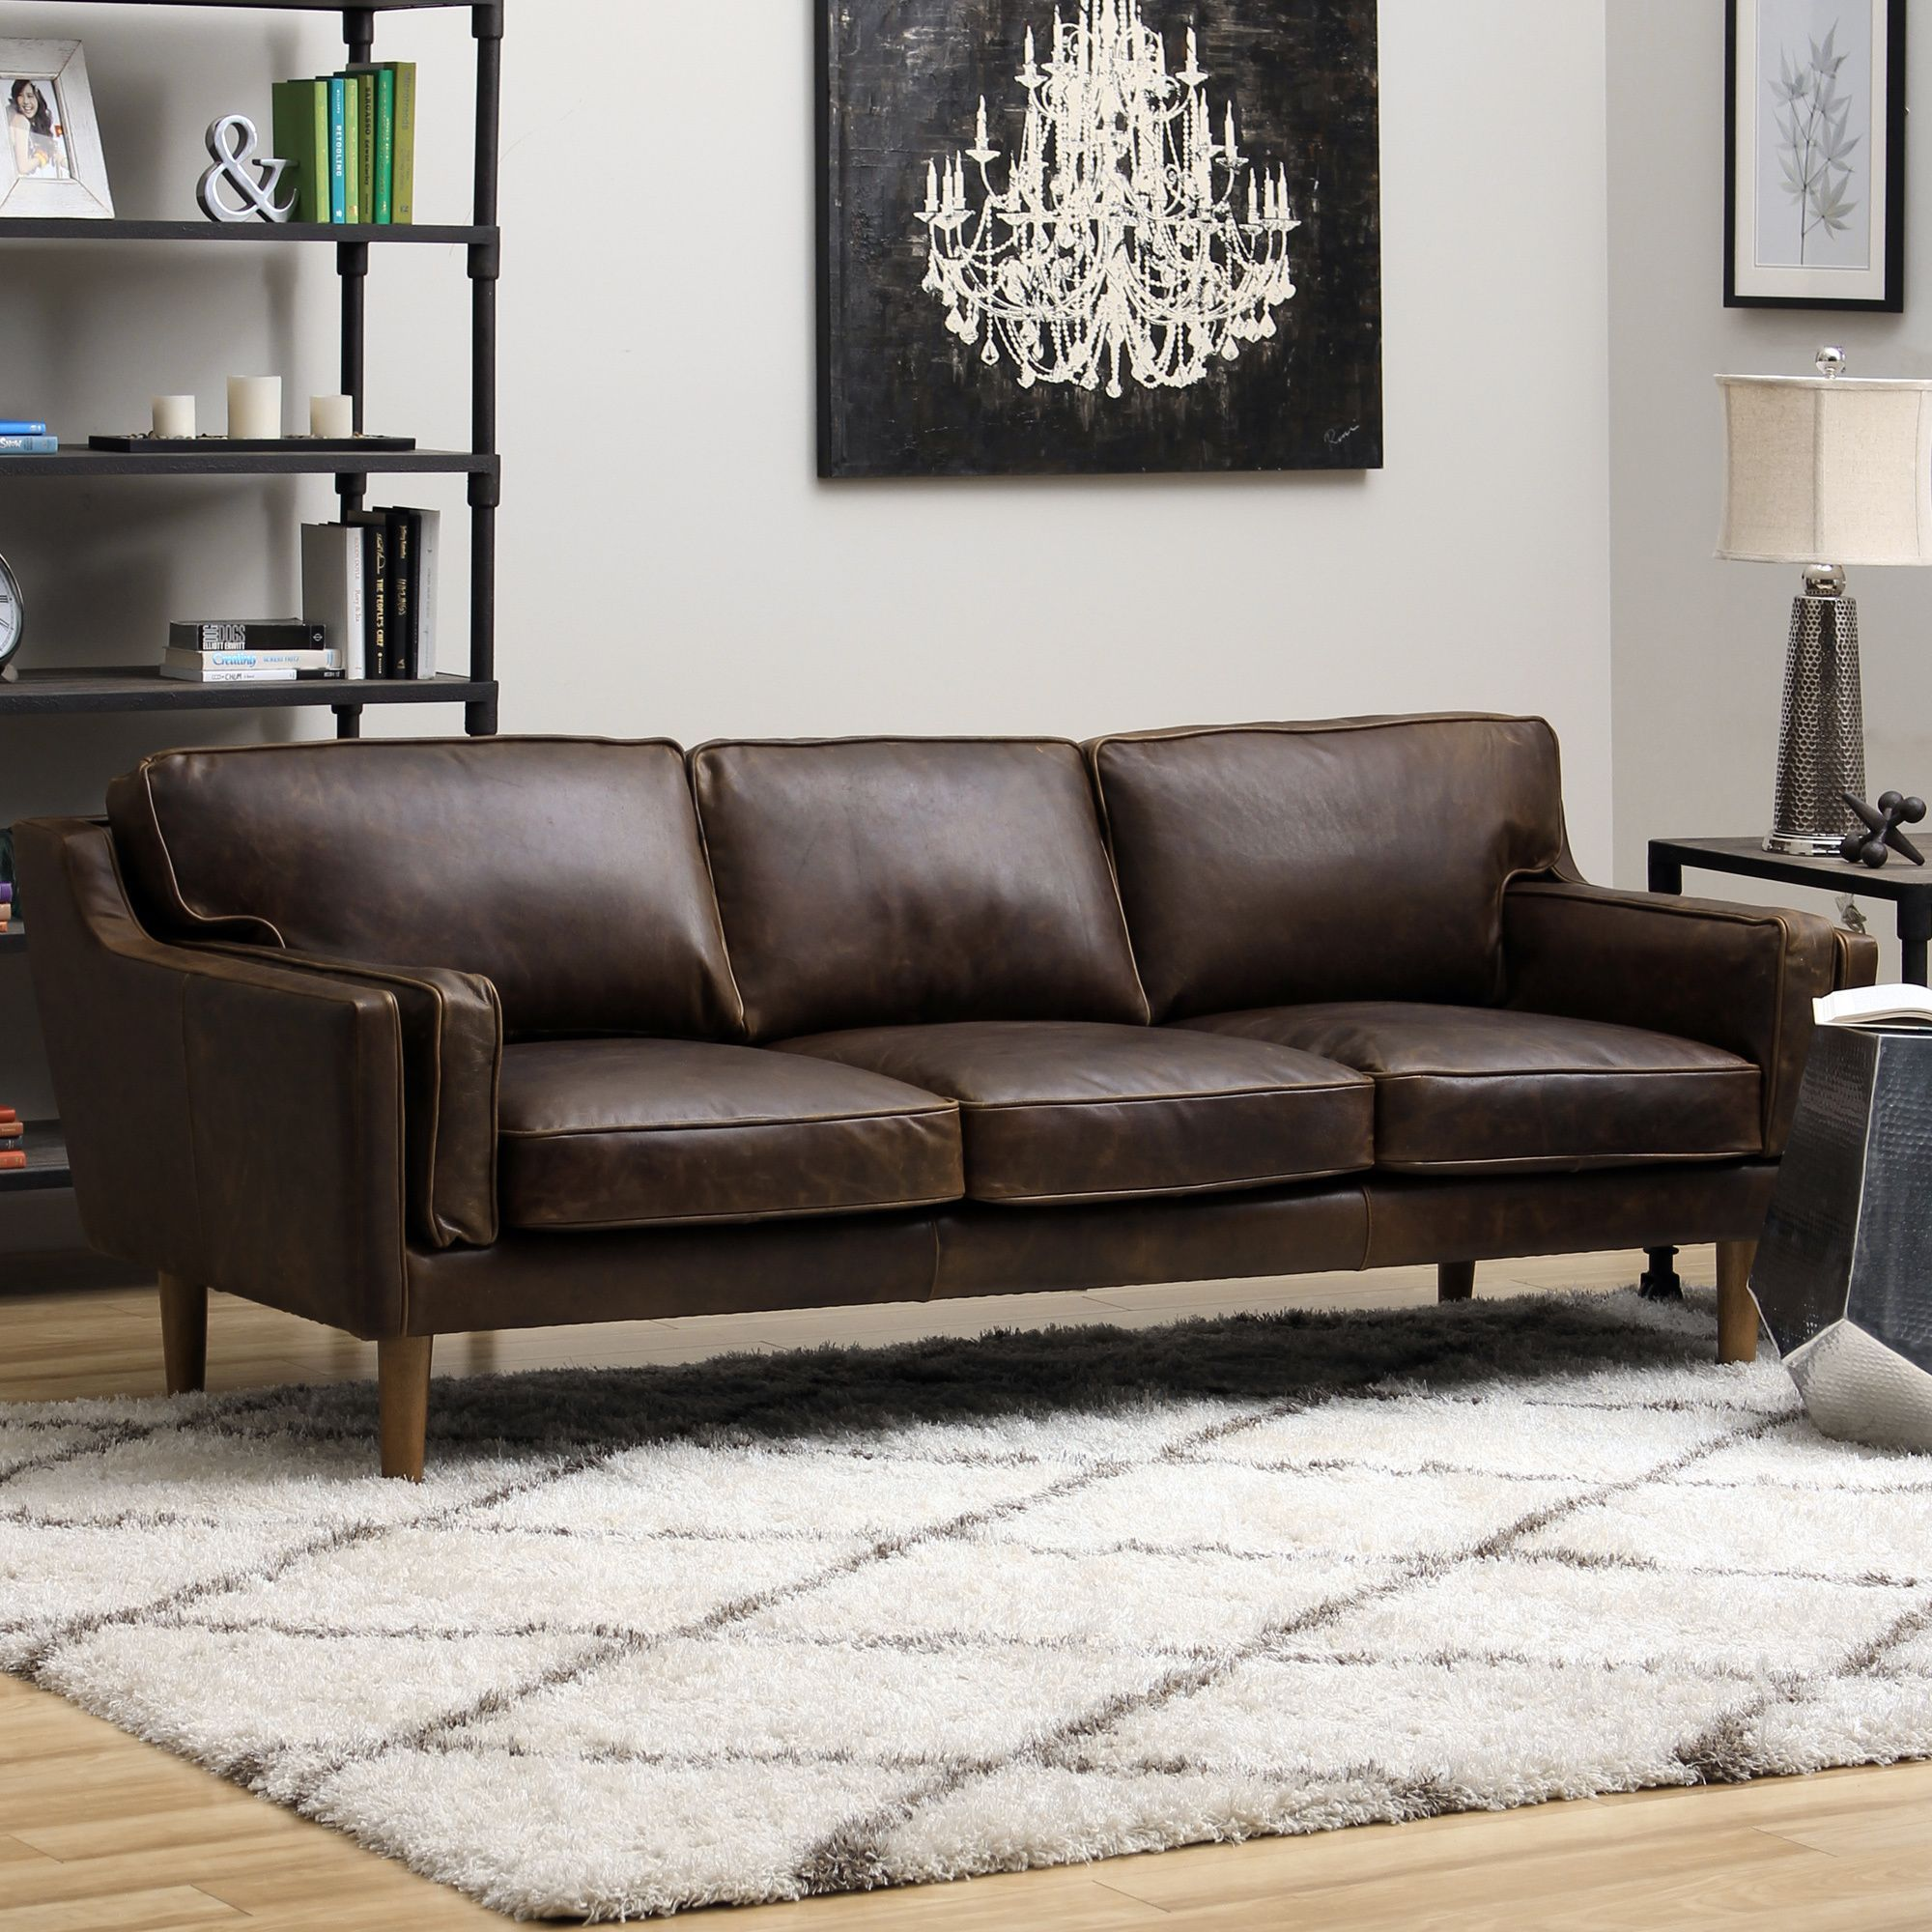 Superb Beatnik Leather Sofa Columbus Chocolate Overstock Gmtry Best Dining Table And Chair Ideas Images Gmtryco